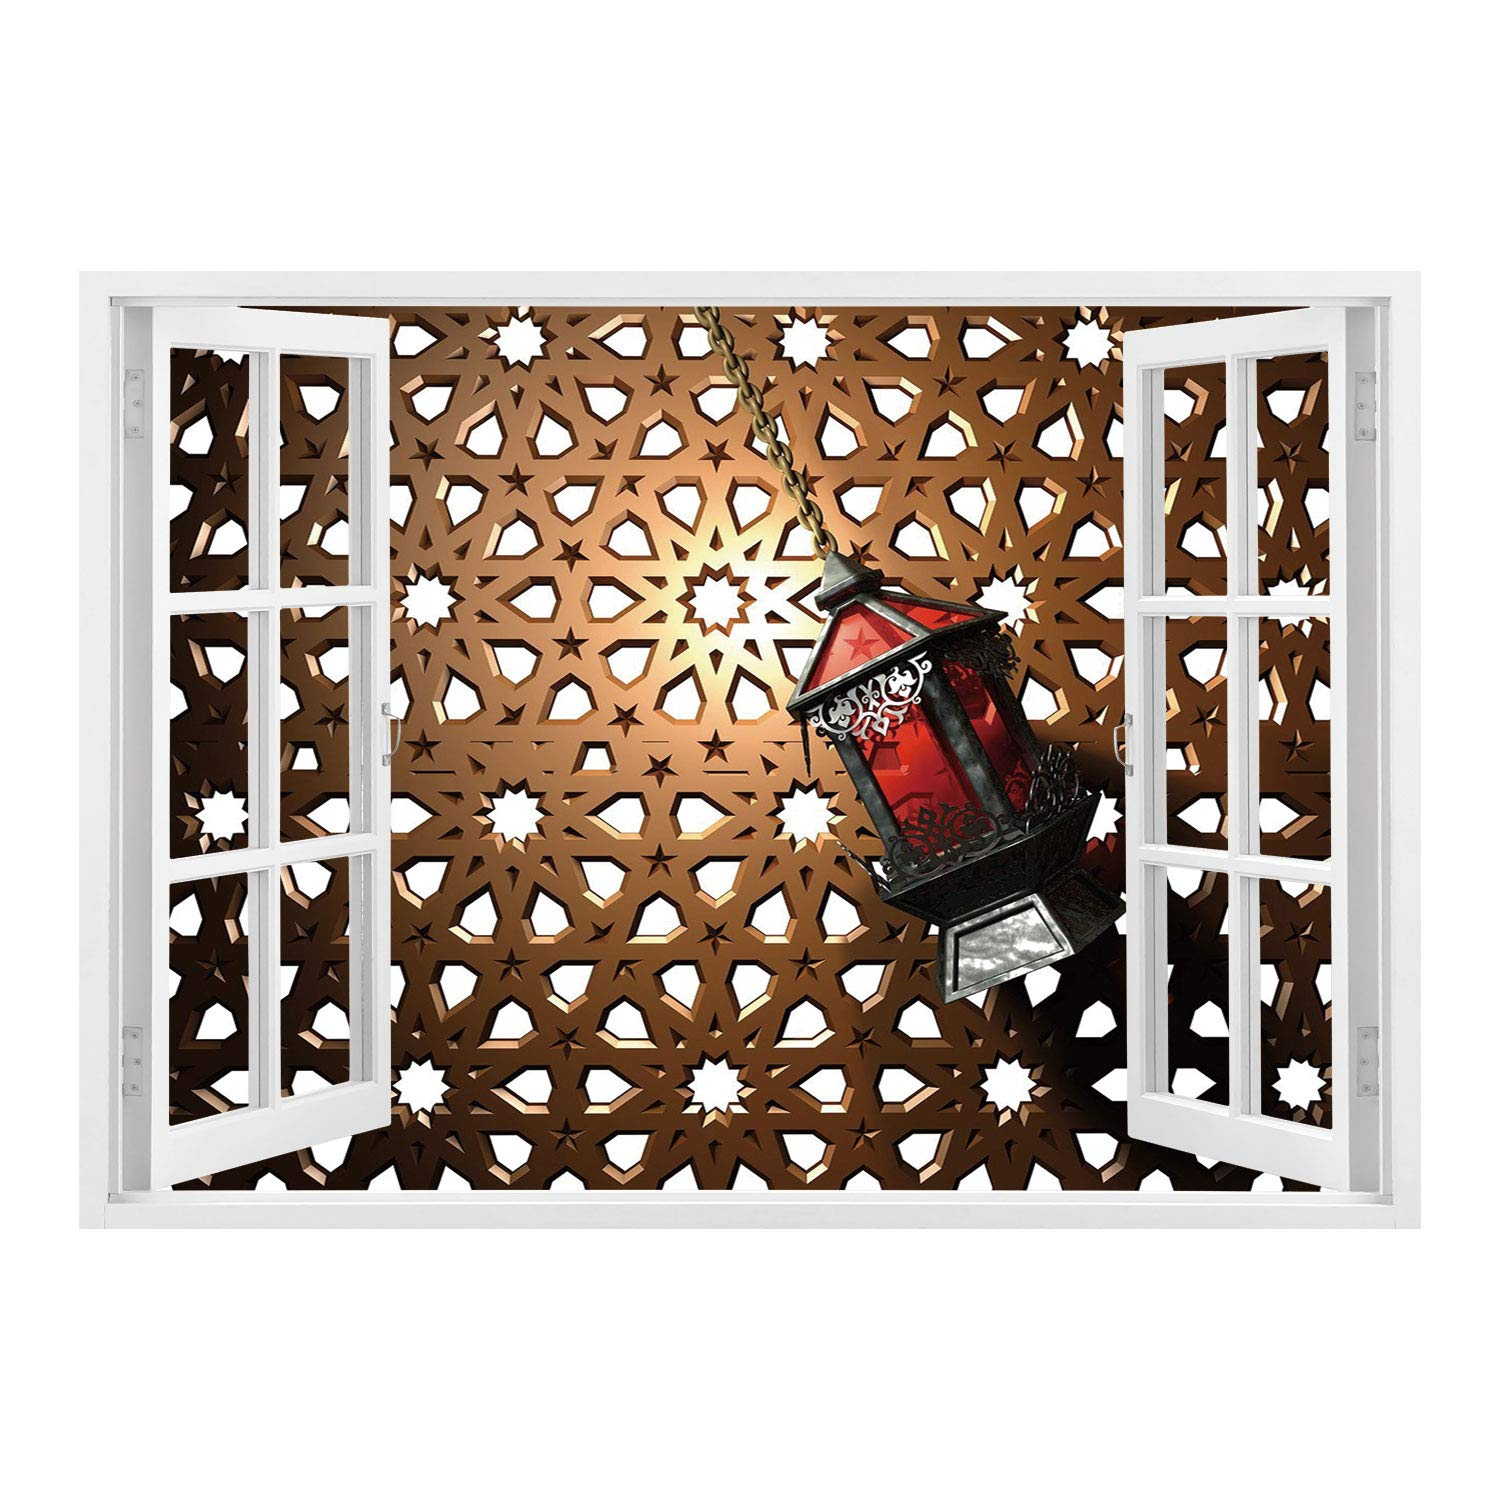 SCOCICI Wall Sticker,Window Looking Out Into/Lantern,Egyptian Fanoos in a 3D Style Realistic Illustration Moroccan Backdrop Design Decorative,Bronze Red Grey/Wall Sticker Mural